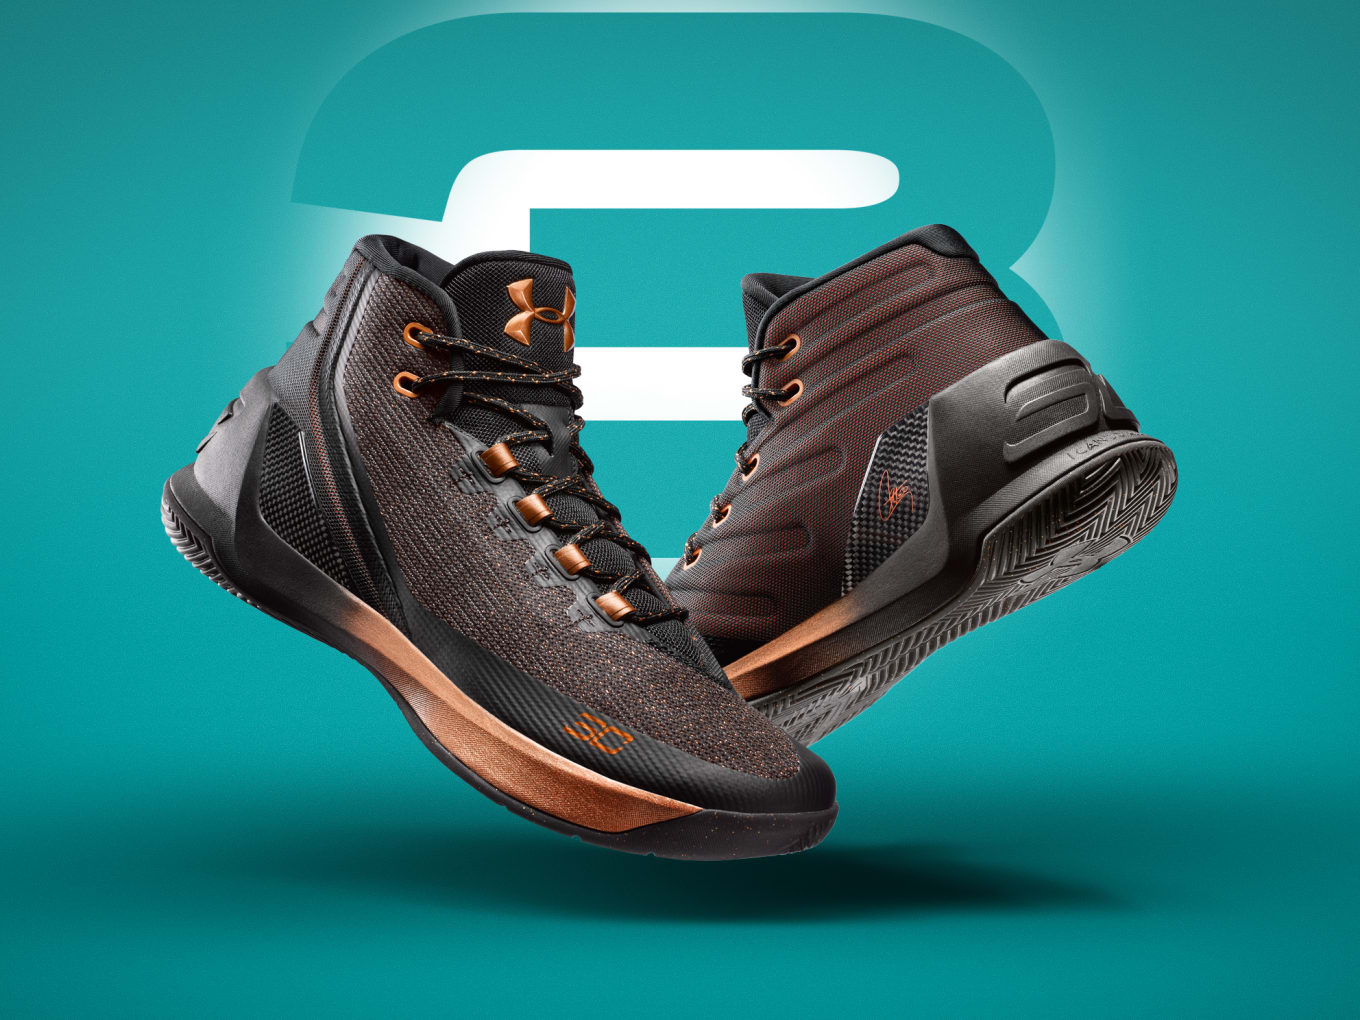 4b868013e759 Under Armour Curry 3s in high and low top.